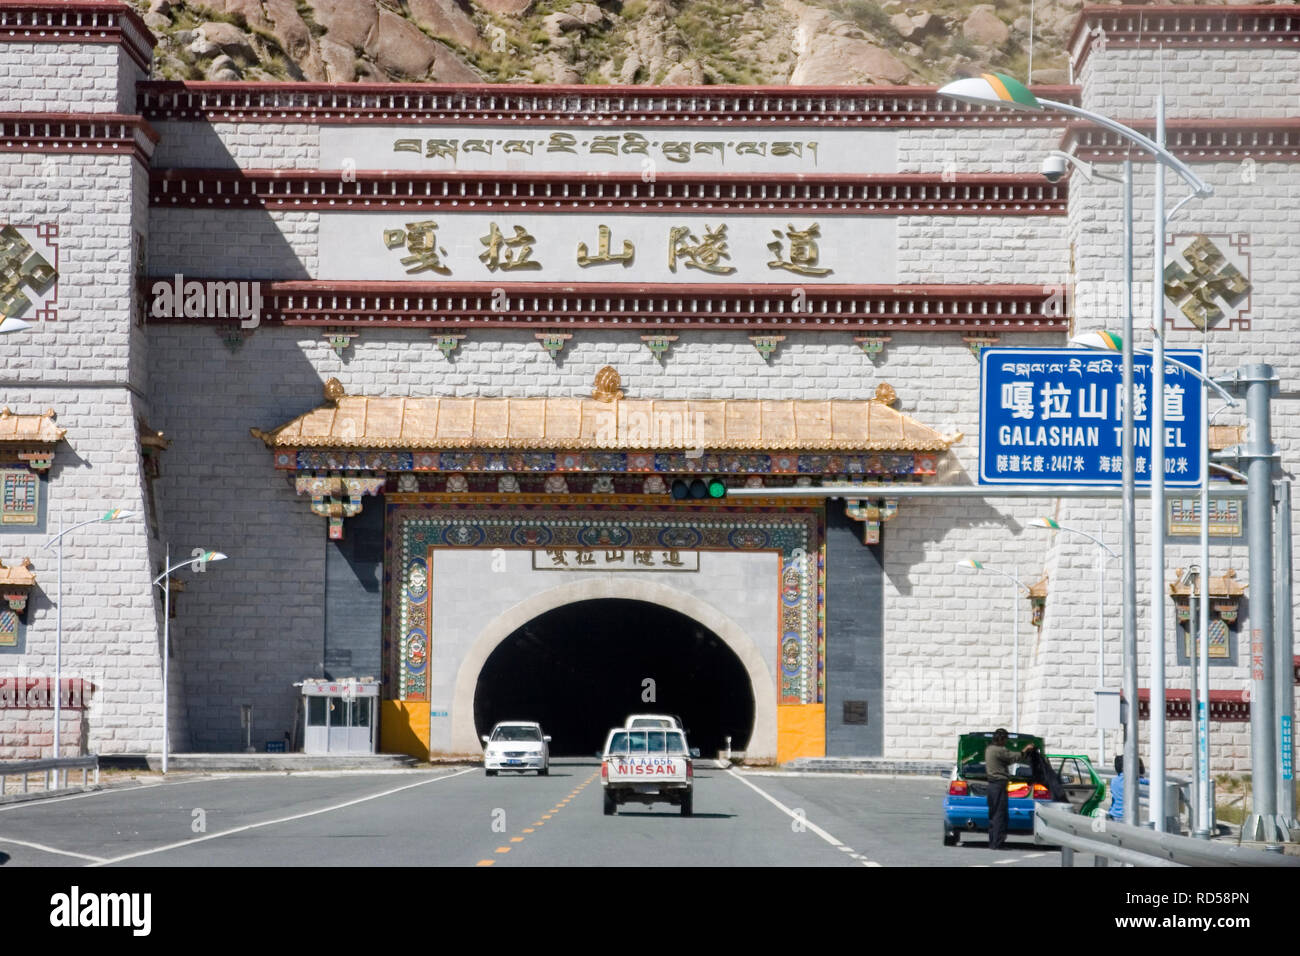 Lhasa Airport Expressway Tunnel - Stock Image